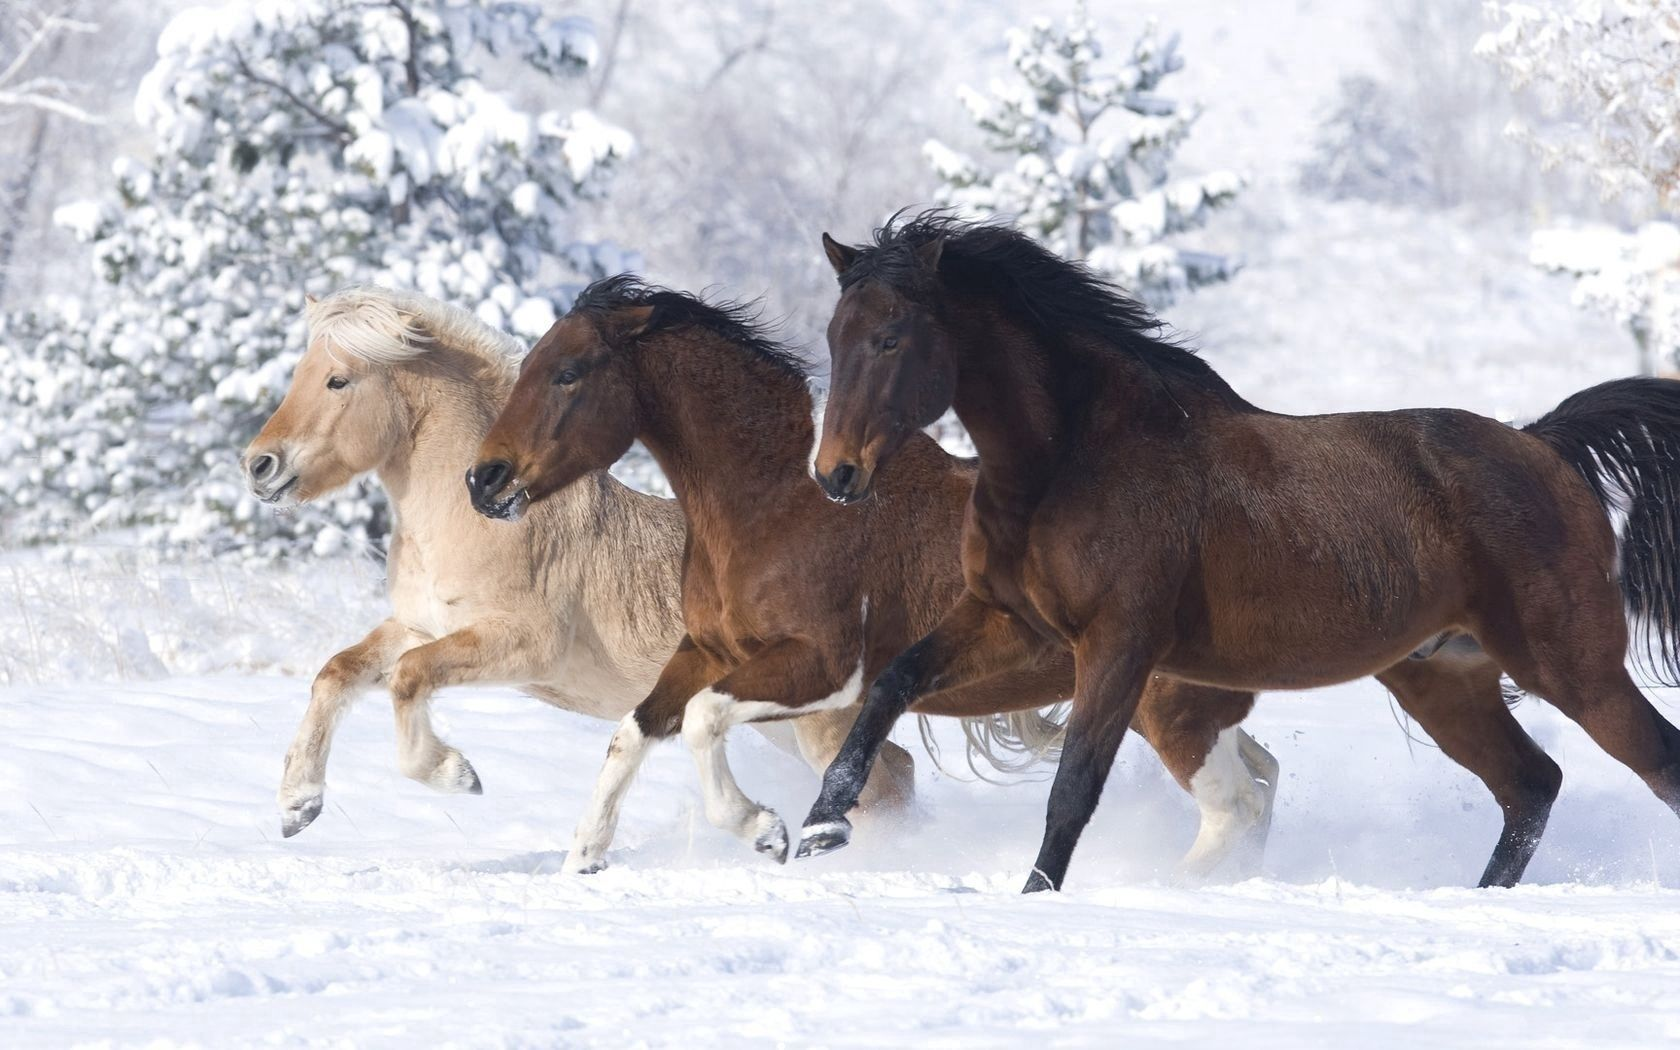 52890 download wallpaper Animals, Horses, Running At A Gallop, Running A Gallop, Winter screensavers and pictures for free